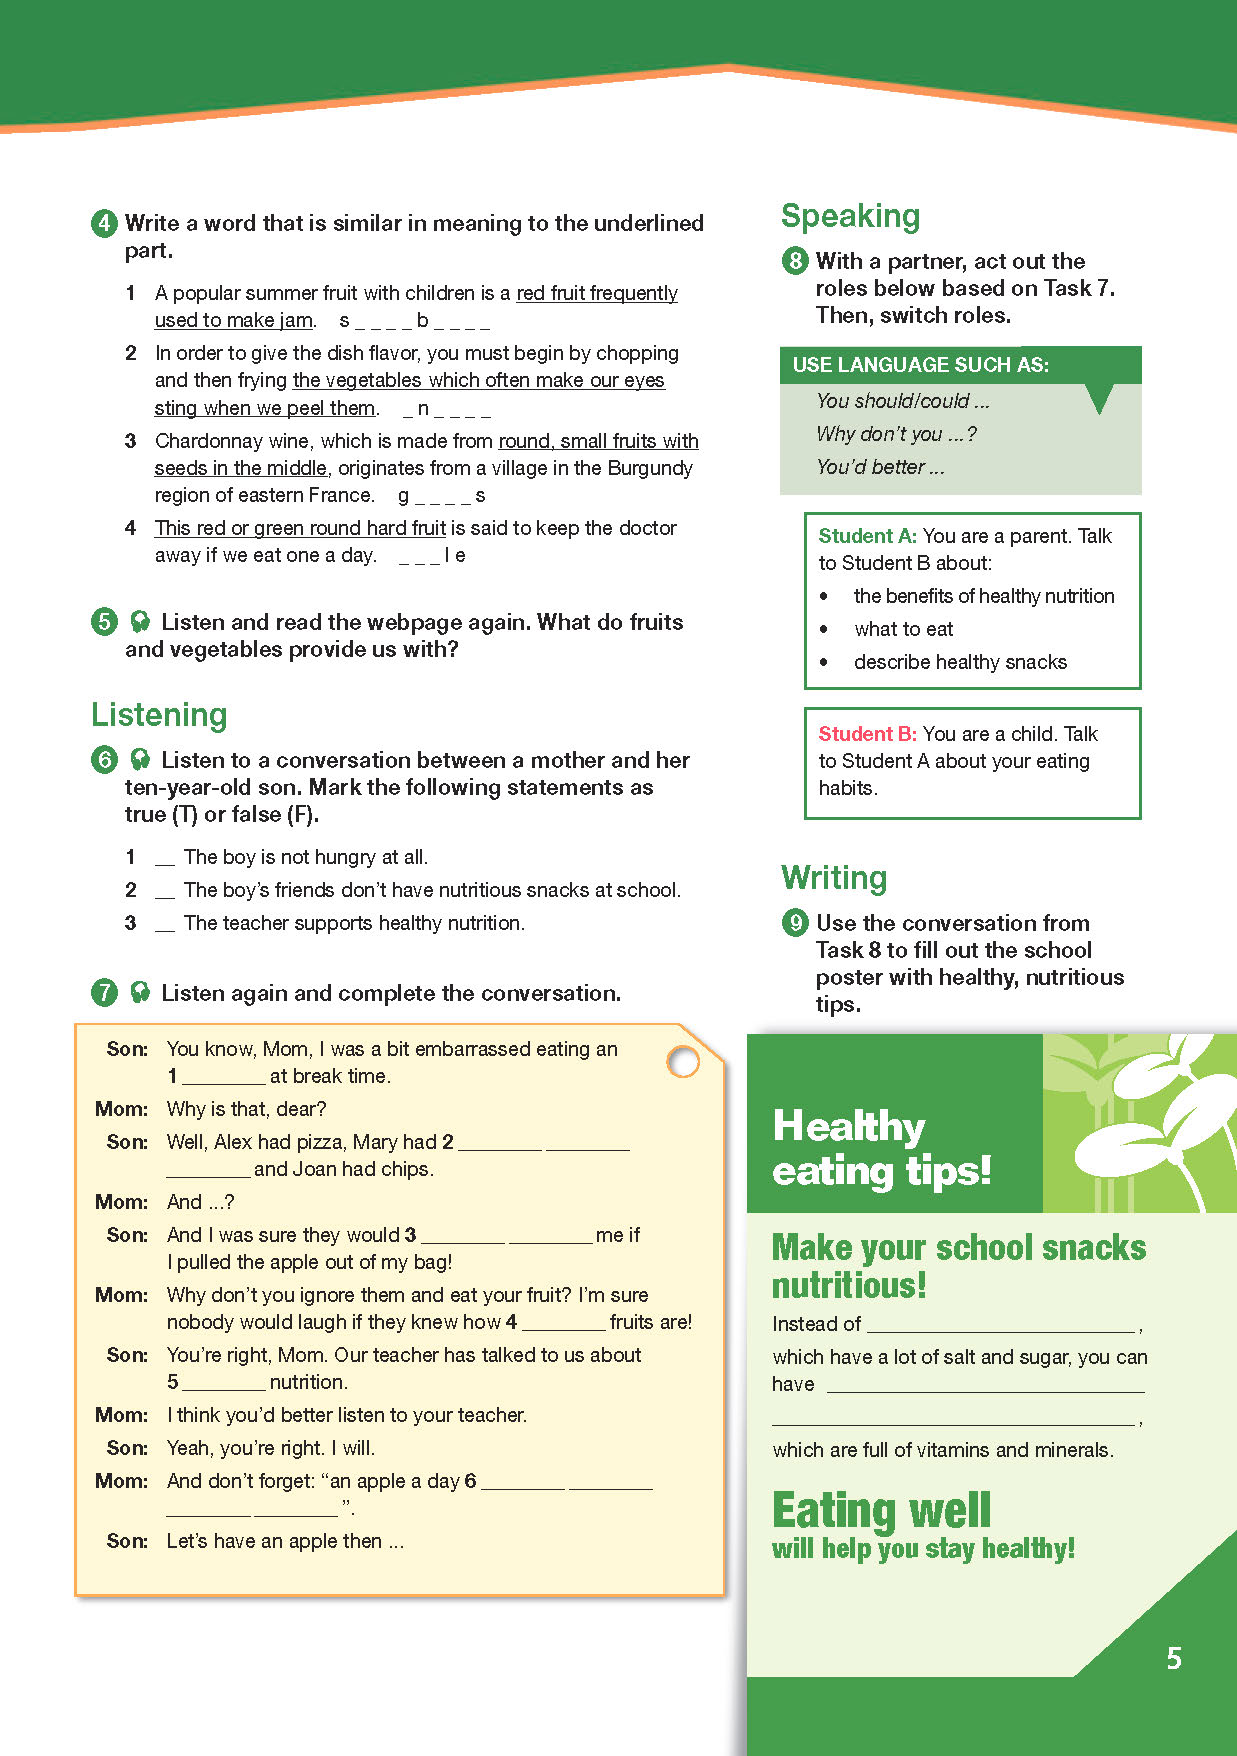 ESP English for Specific Purposes - Career Paths: Nutrition & Dietetics - Sample Page 2